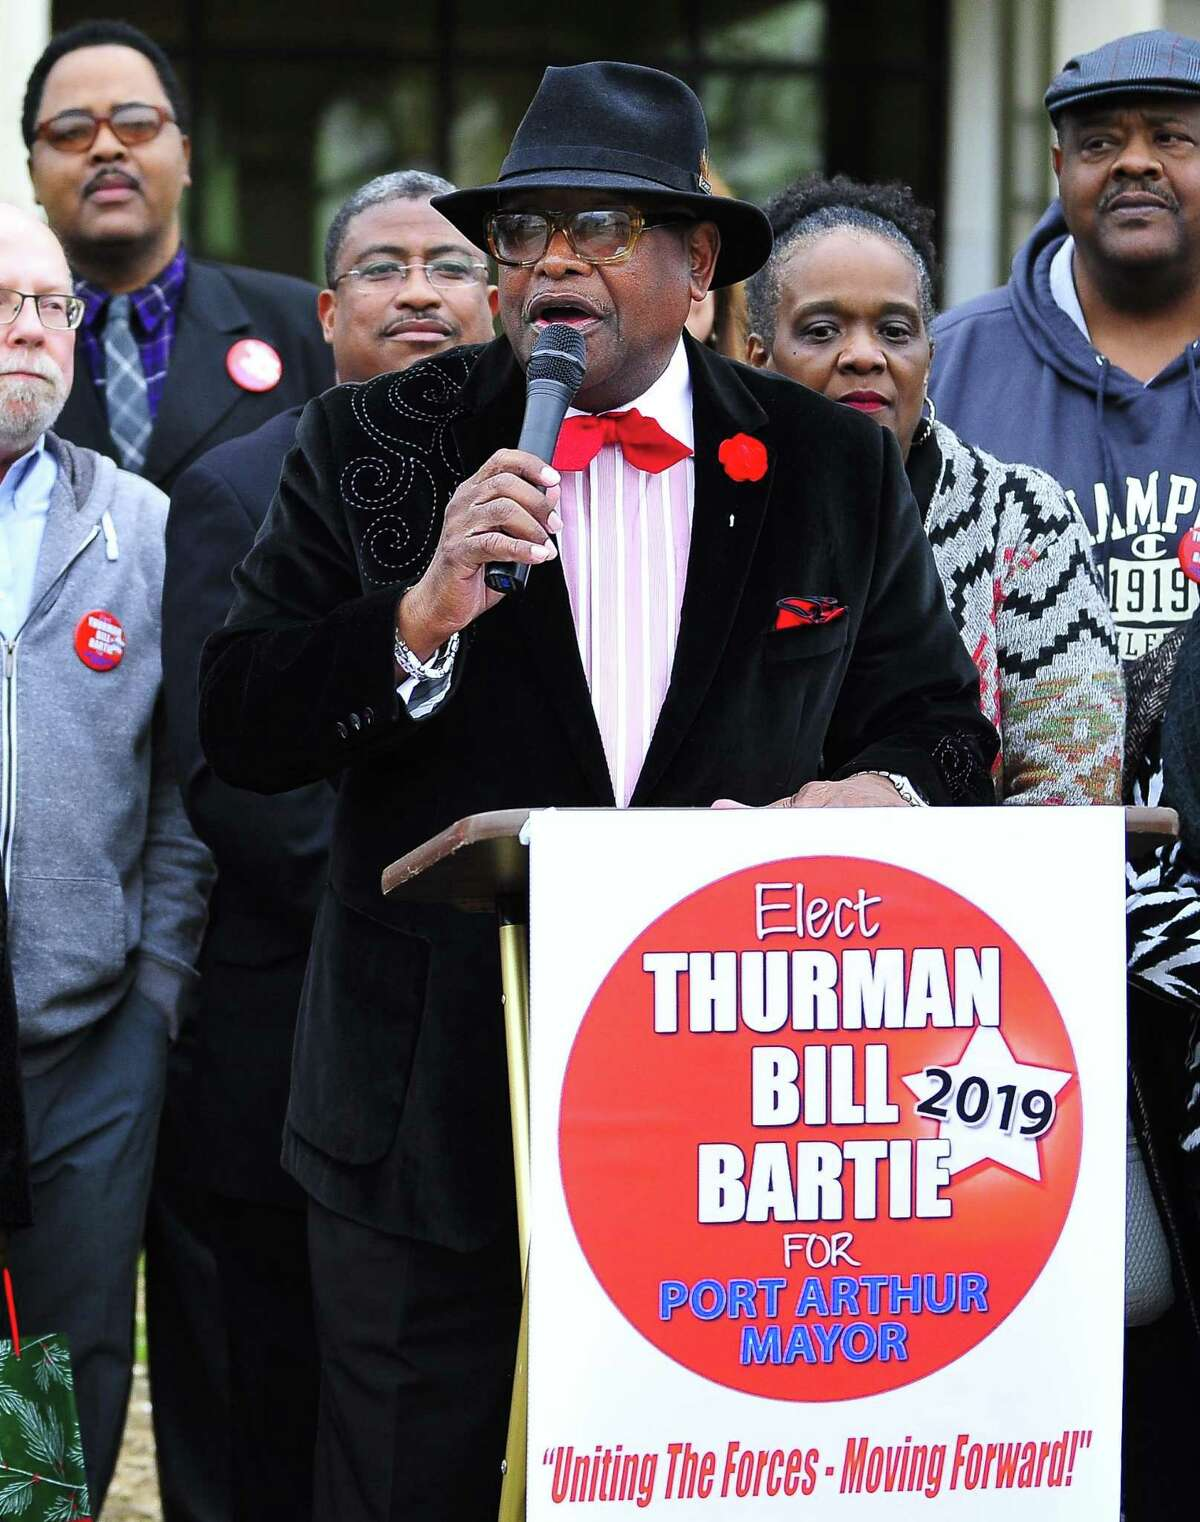 Thurman Bill Bartie announces his candidacy for the 2019 Port Arthur mayor race in front of City Hall on Tuesday. Photo taken on Tuesday 01/15/19.